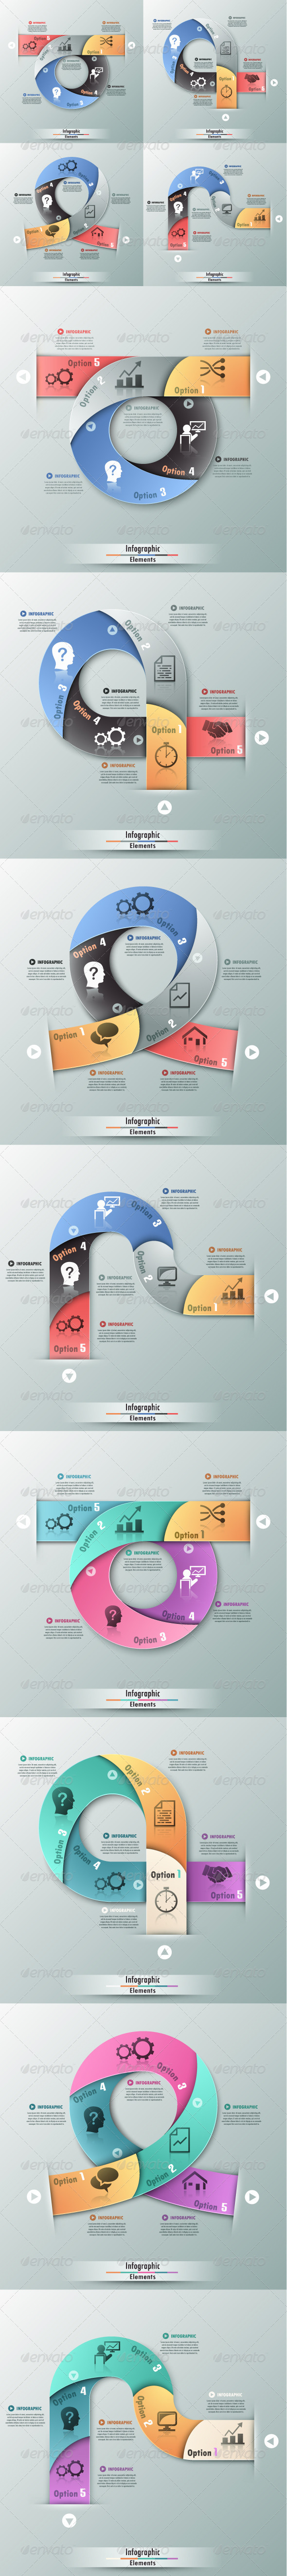 GraphicRiver Set Of 4 Infographic Banners In 2 Colors 7687387